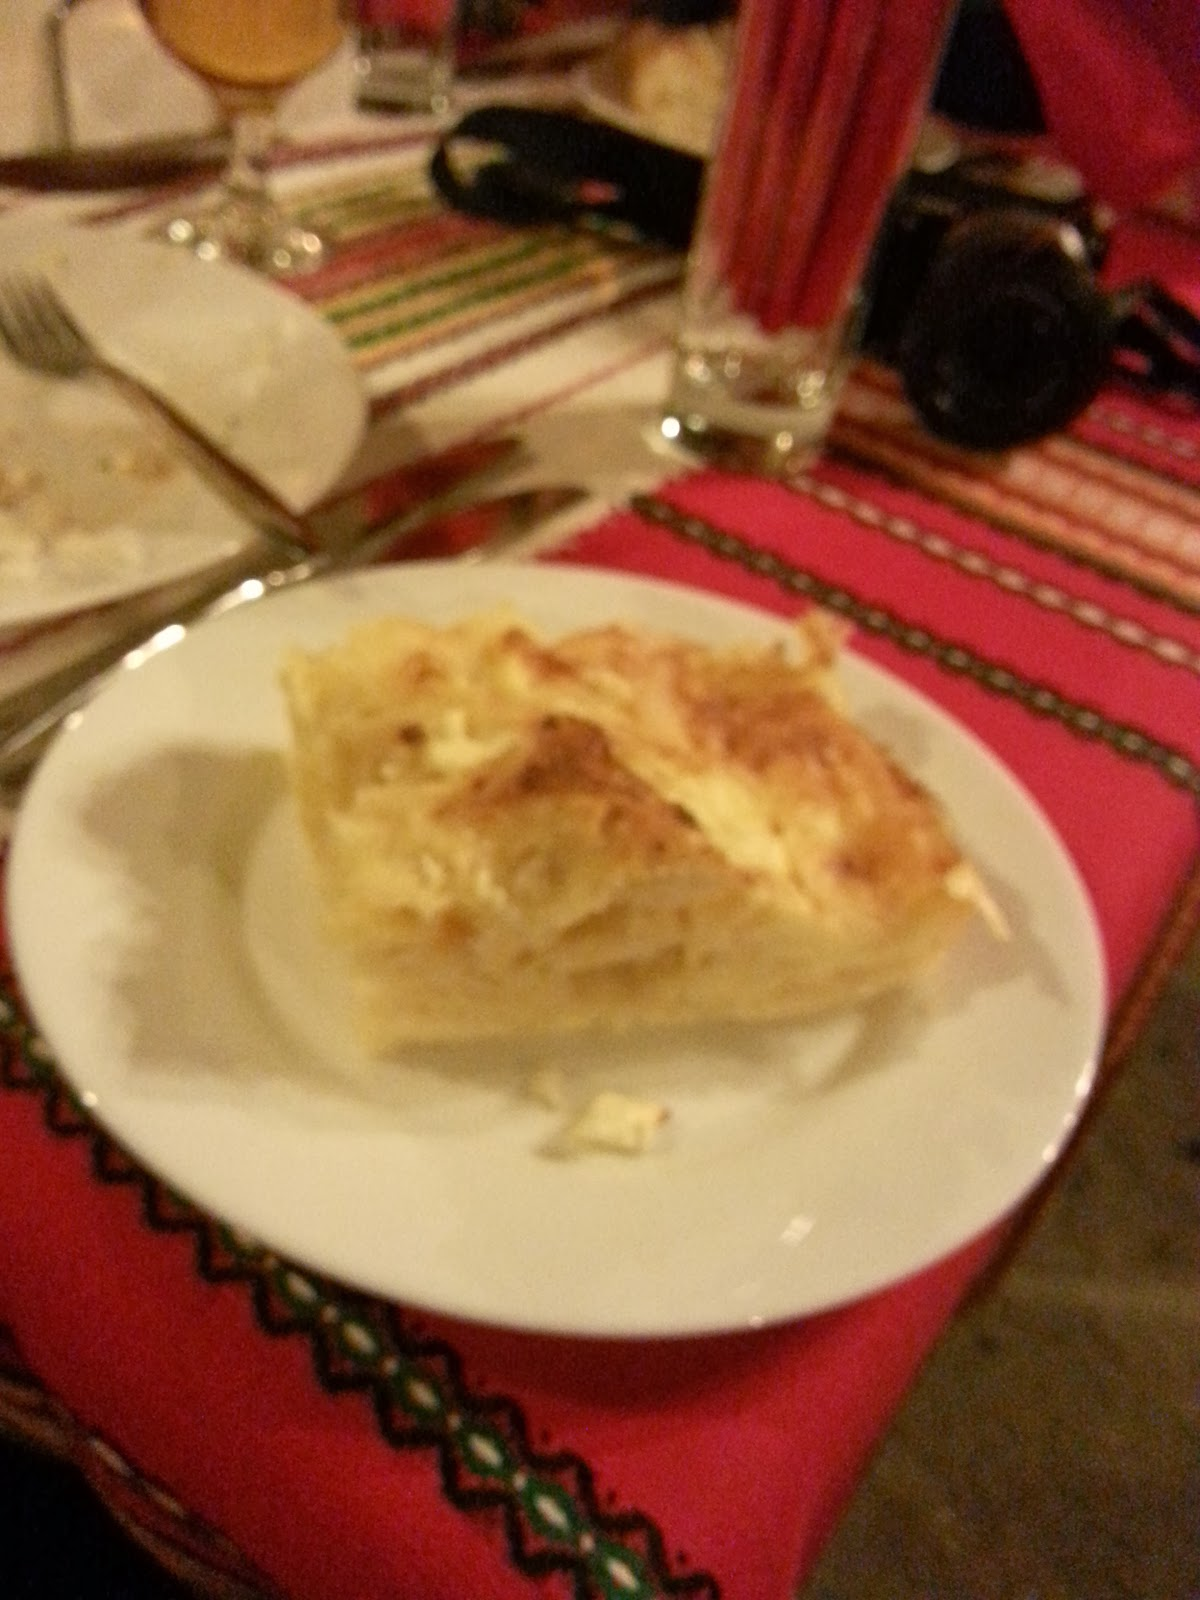 Then a slice of nomnom Banitsa